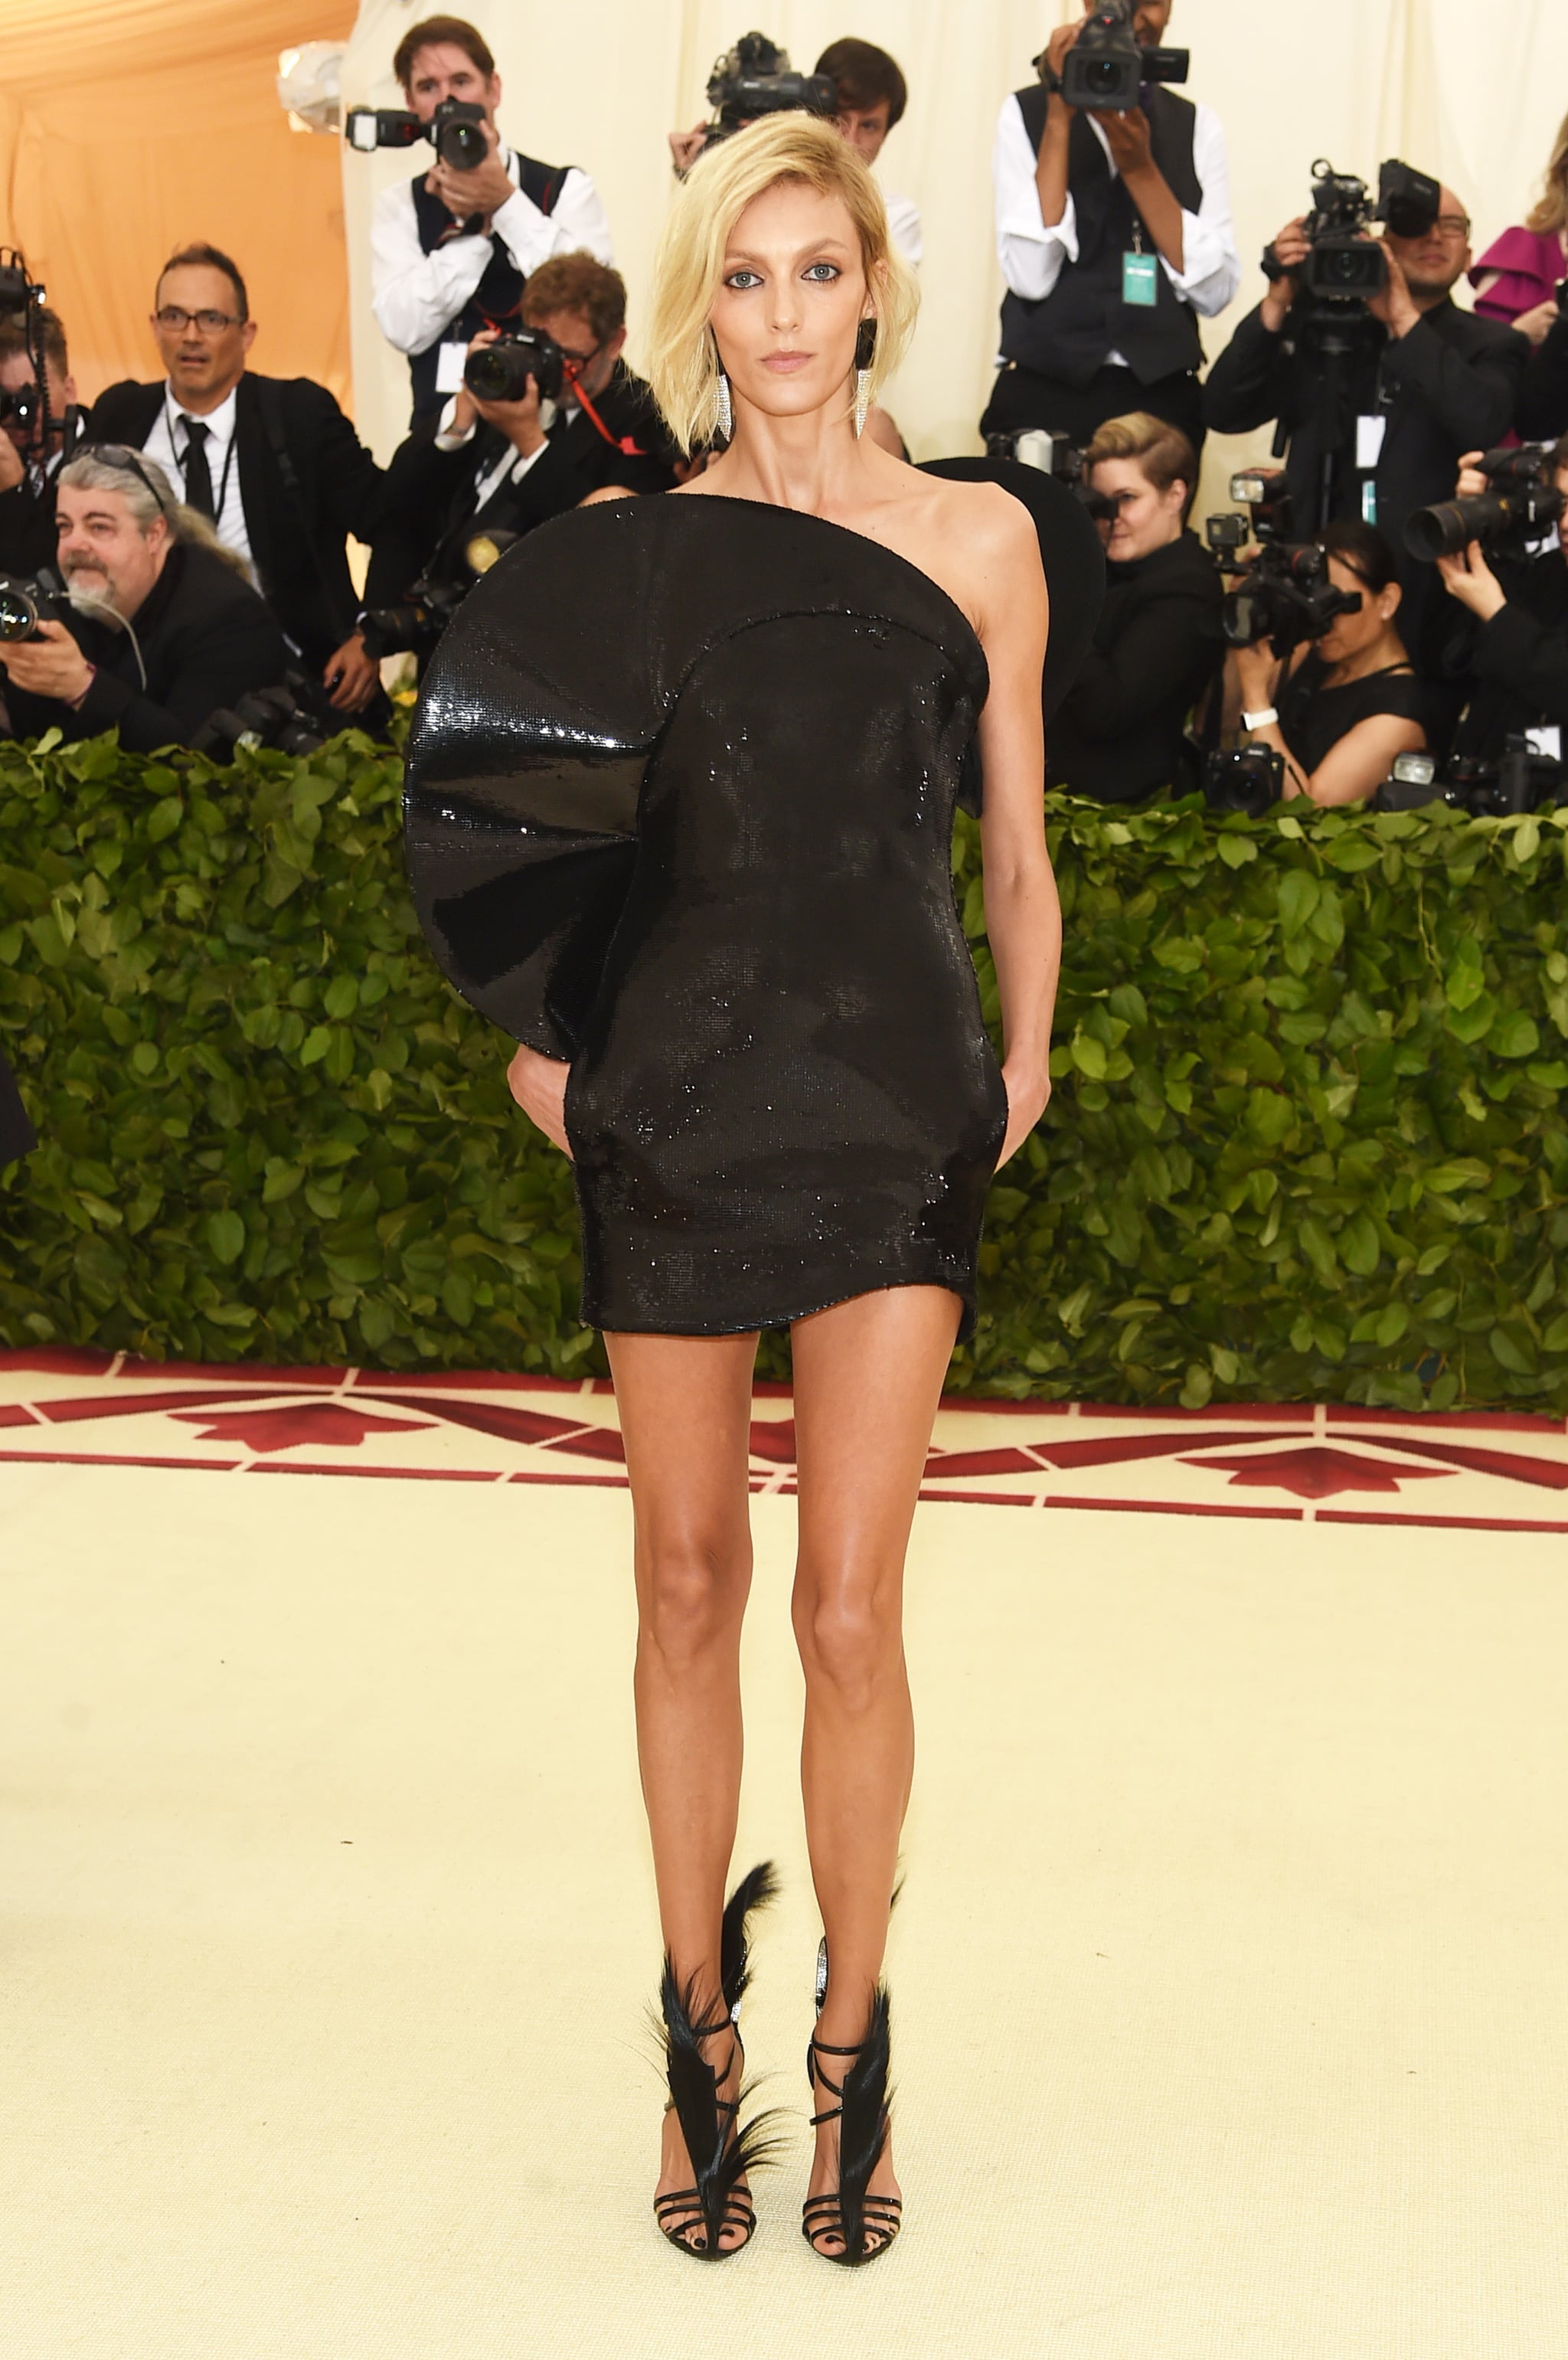 Anja Rubik Hot Gala Dress - Anja Rubik Hot Gala Dress